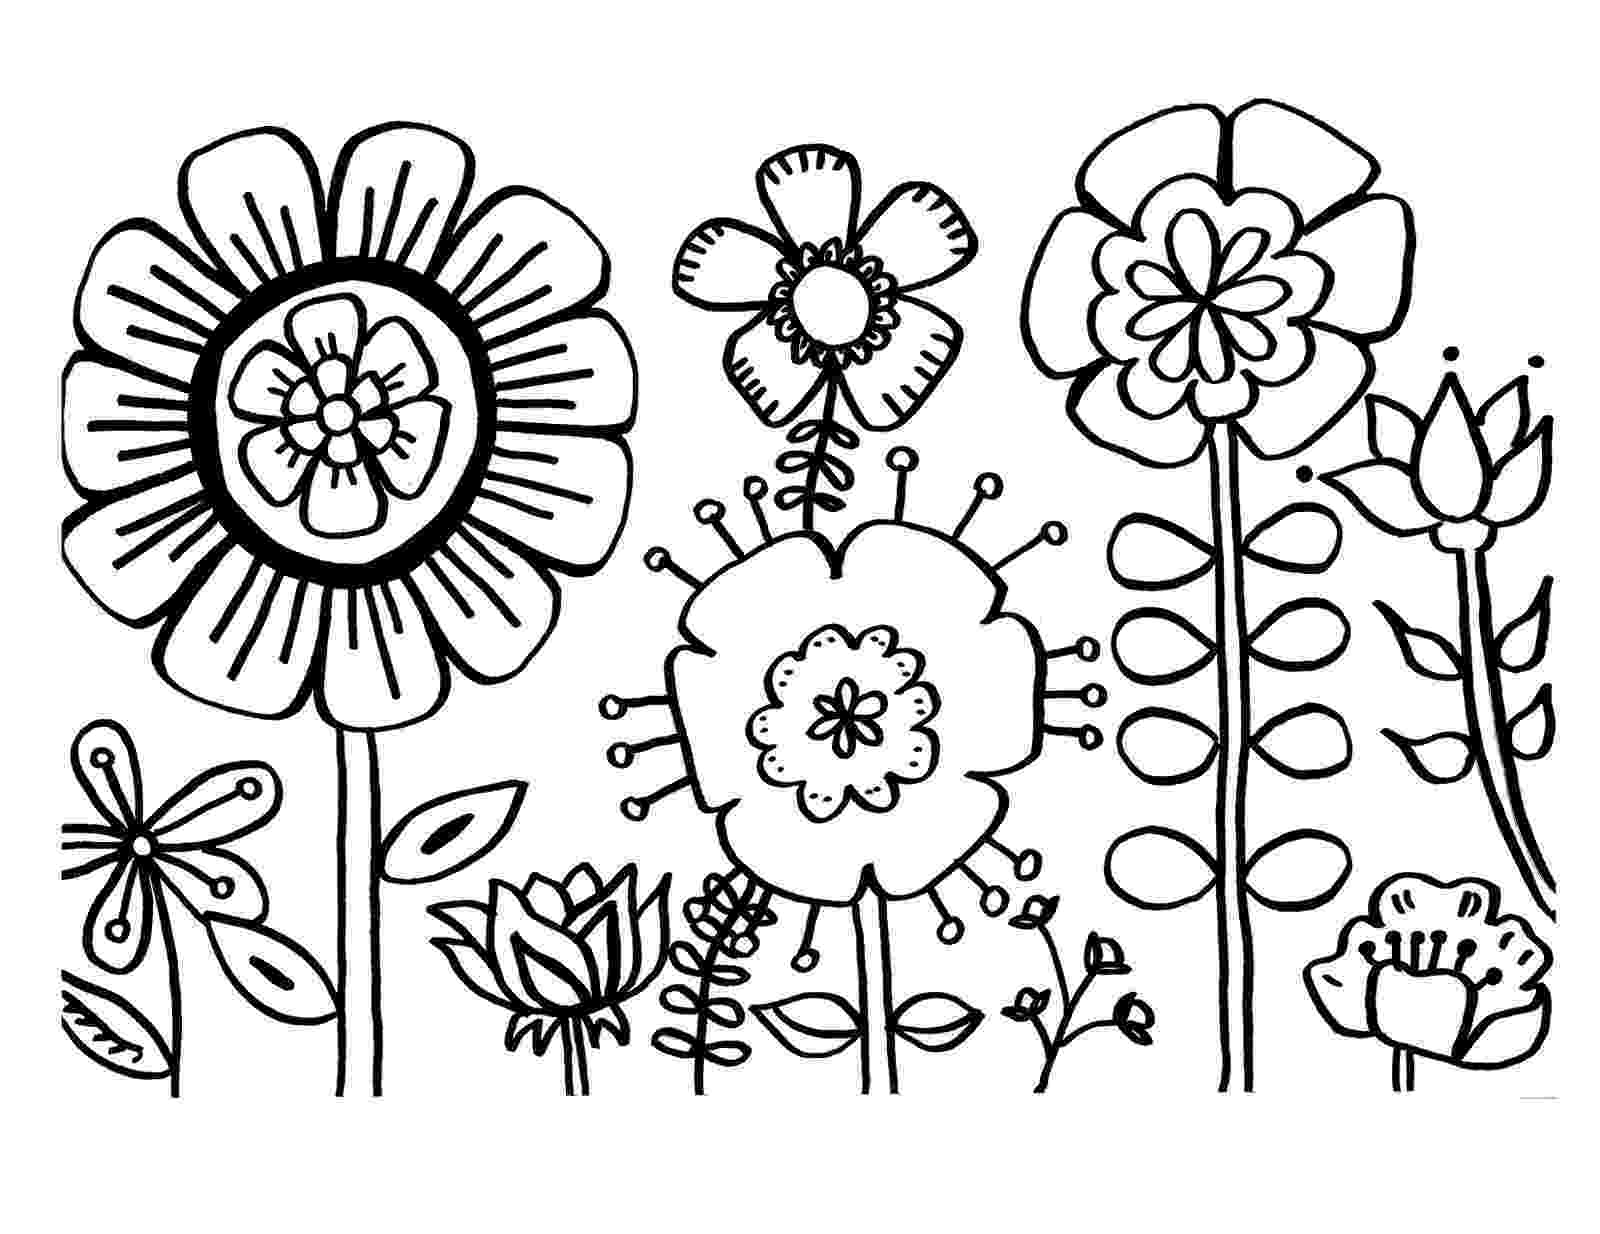 pictures of flowers to print and color free printable flower coloring pages for kids best pictures of to print color and flowers